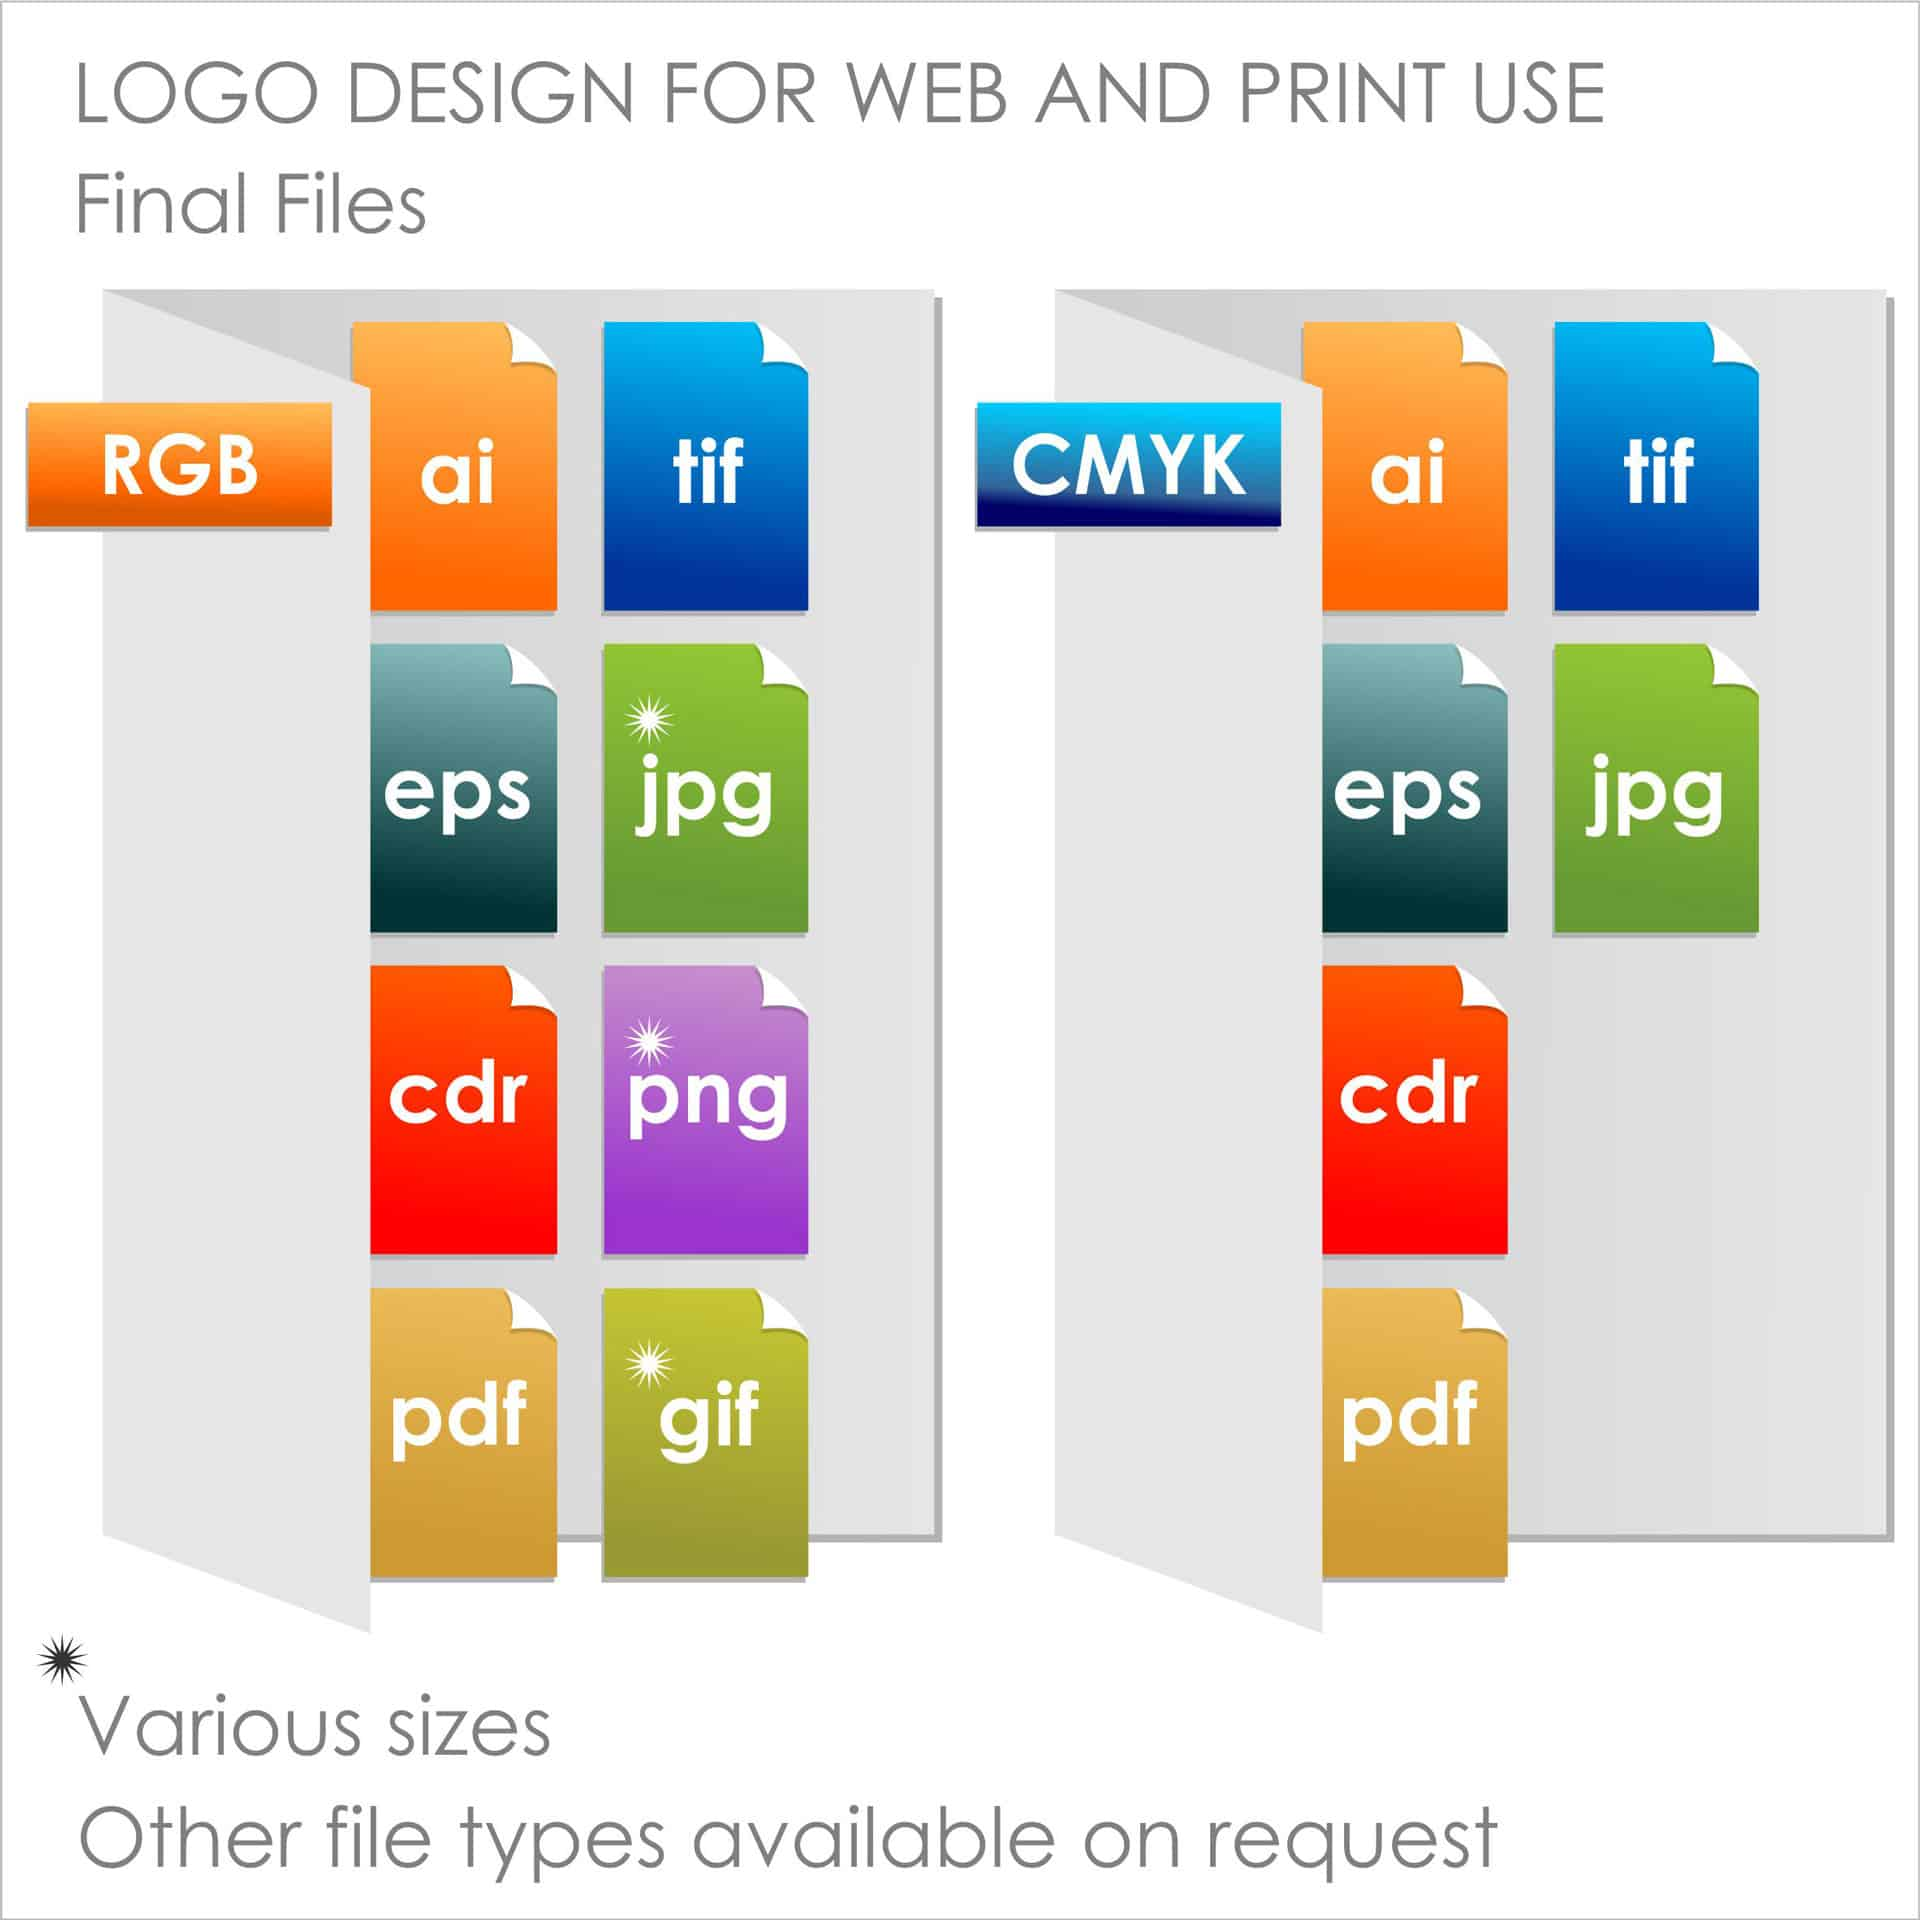 Logo design for web and print use, final files explained